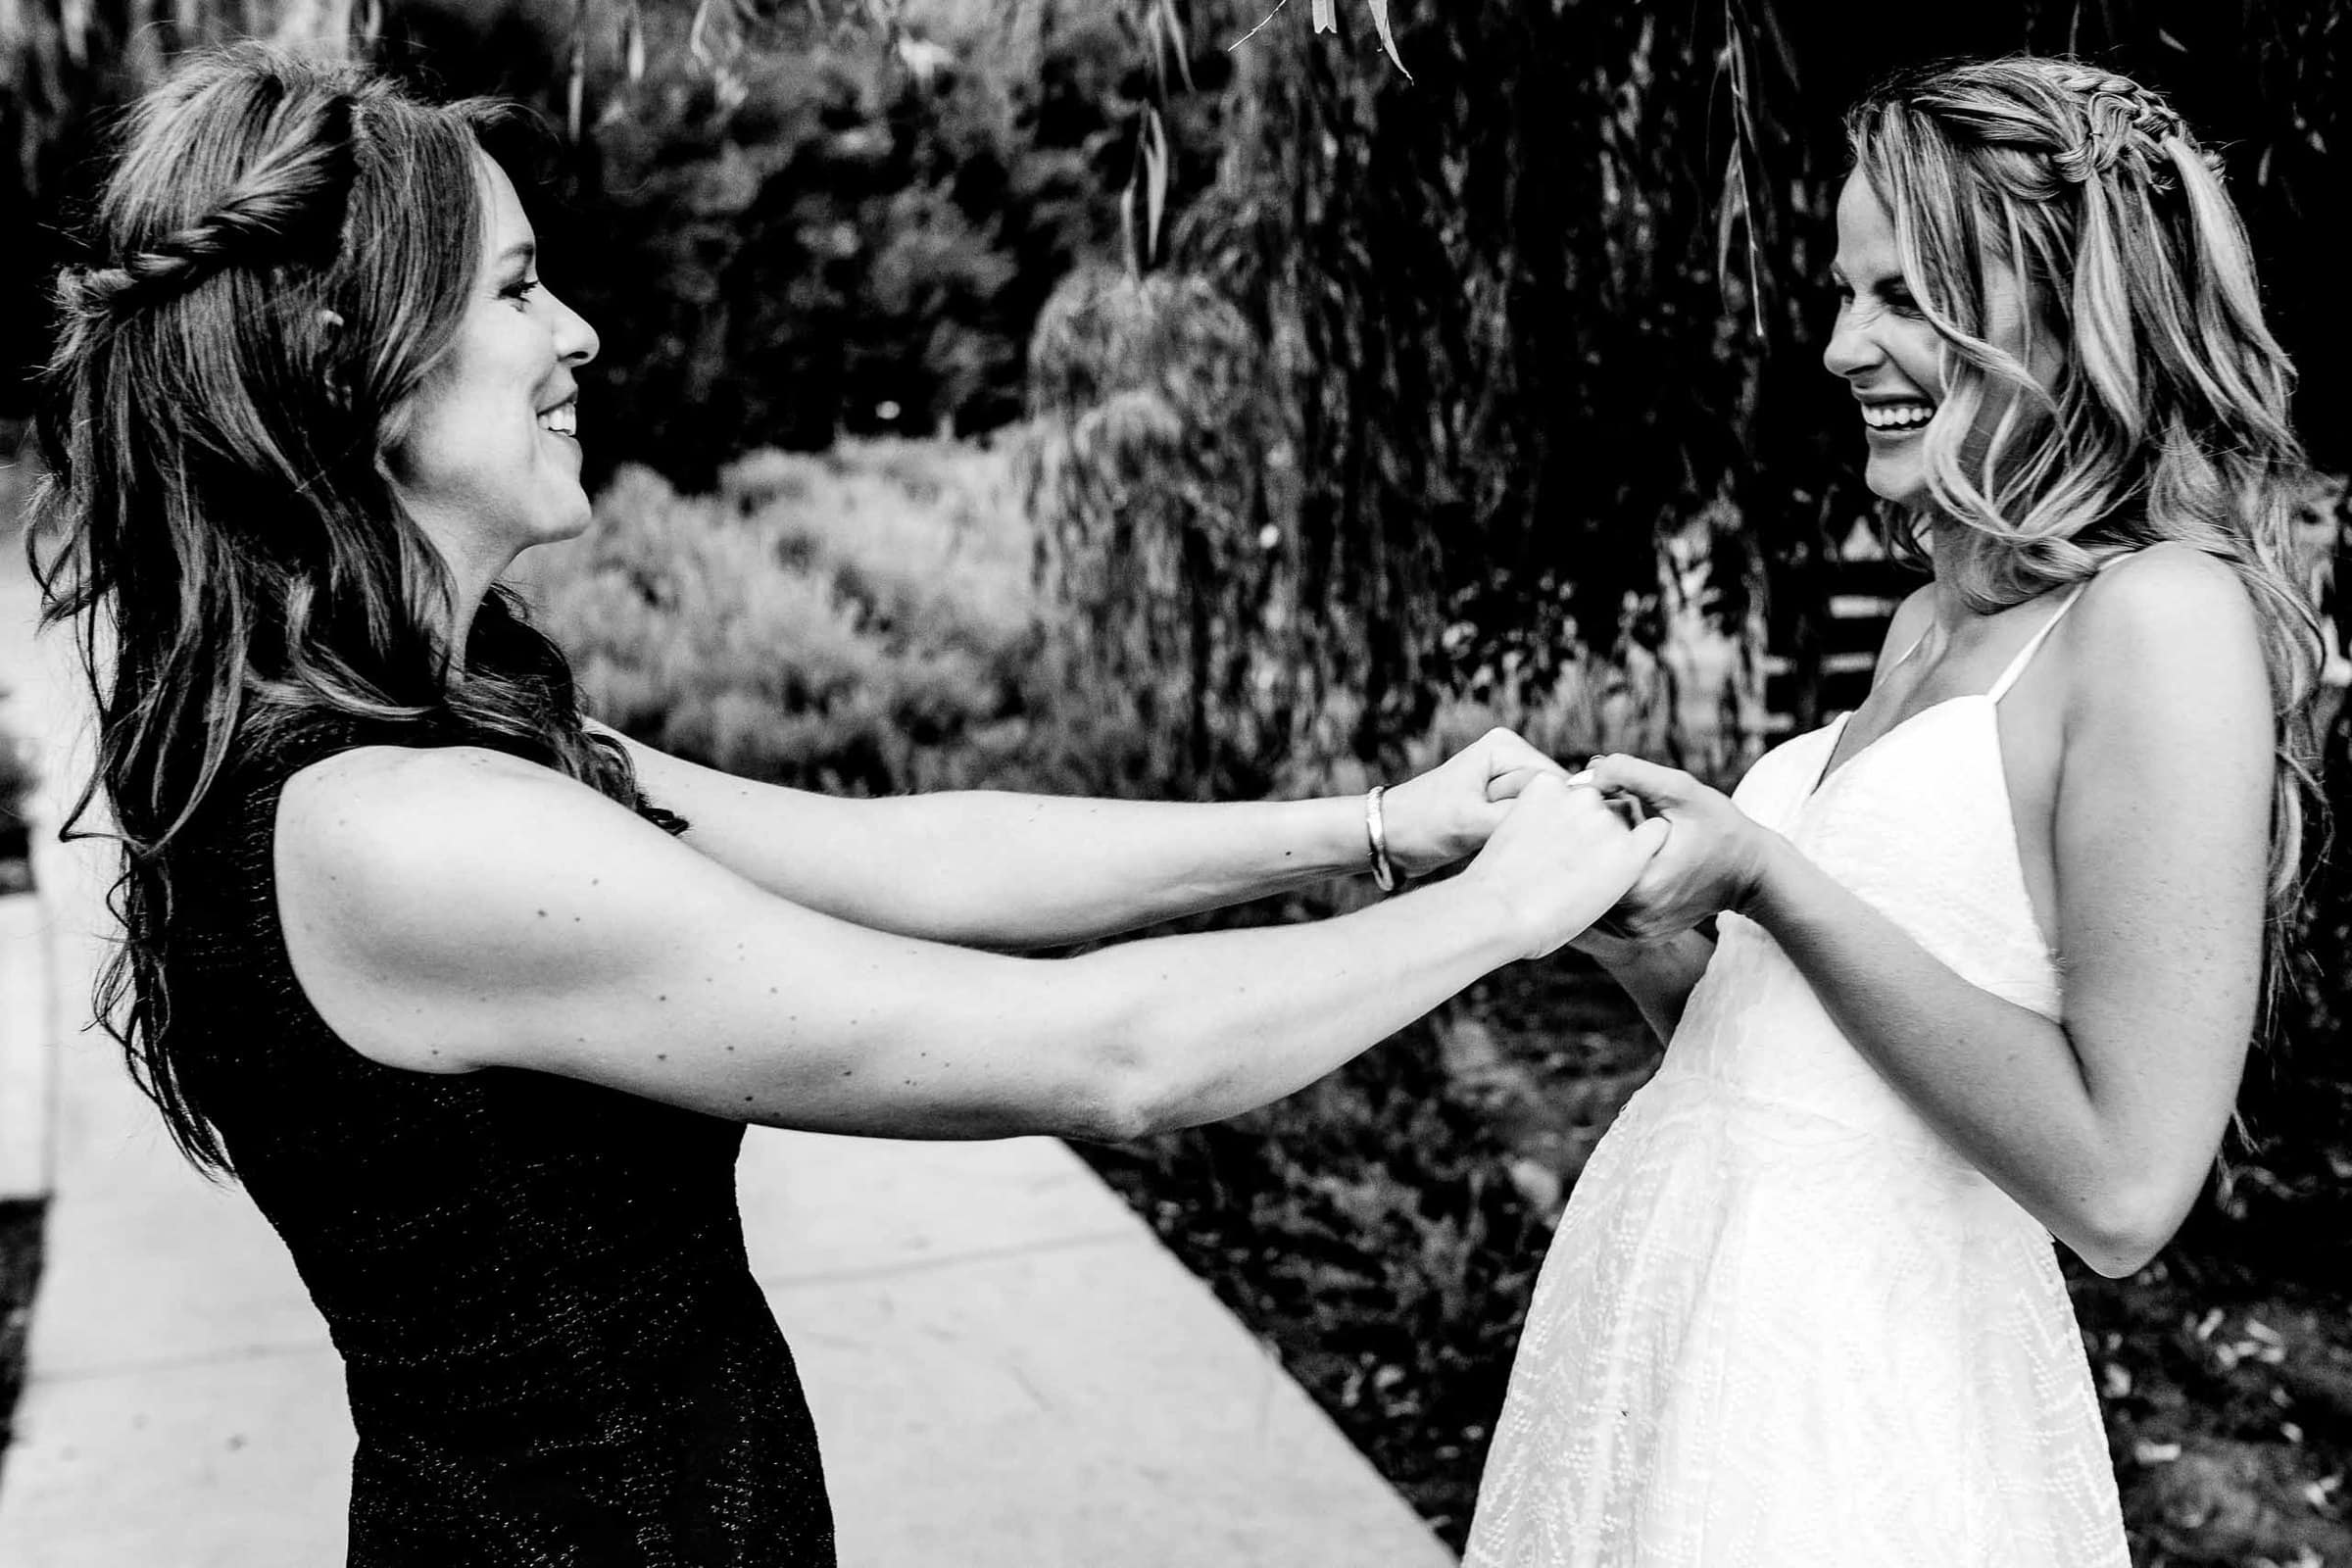 Two happy brides embracing their love moments after their Calamigos Ranch wedding ceremony